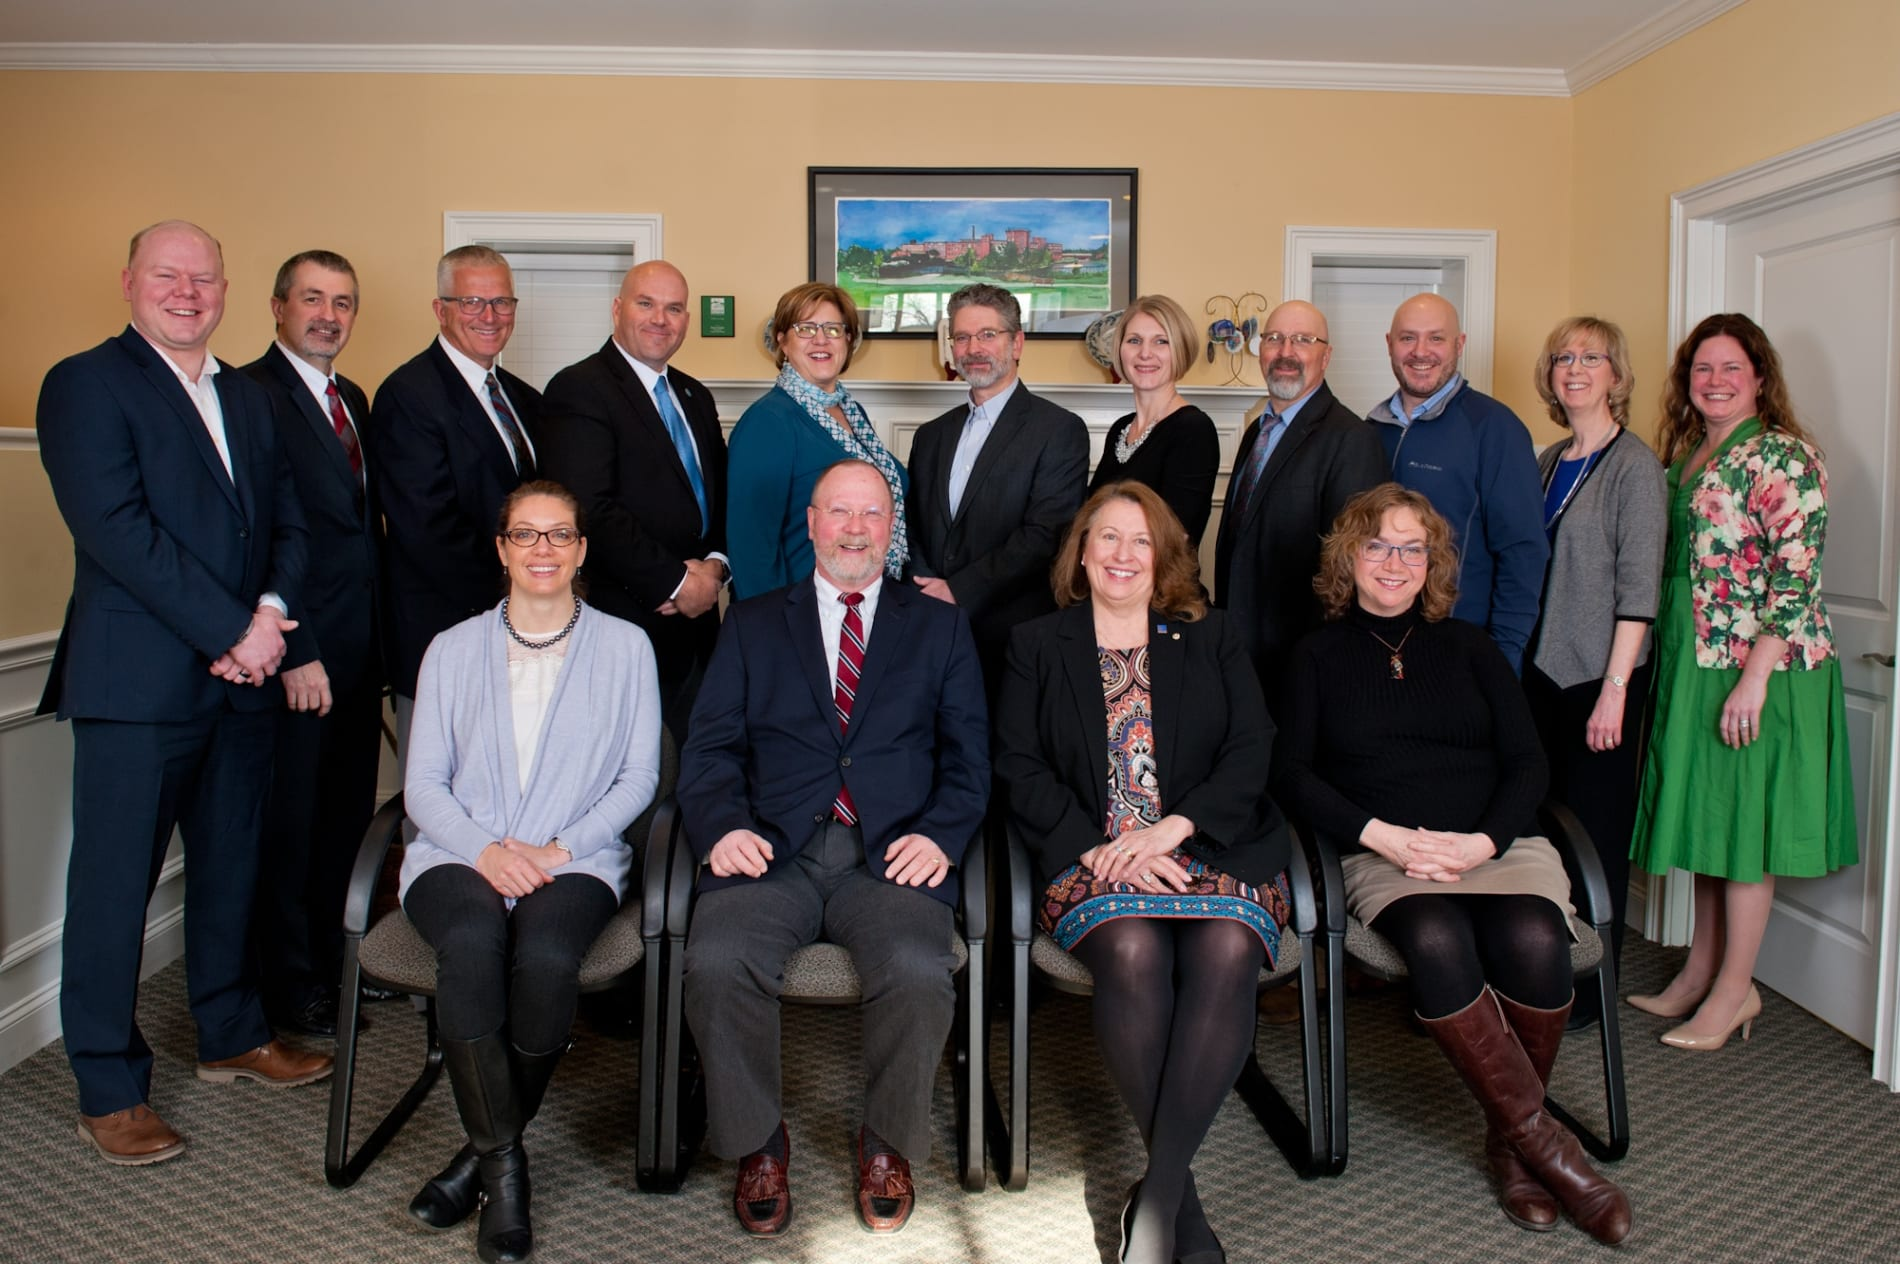 Board of Directors 2018 Group Photo